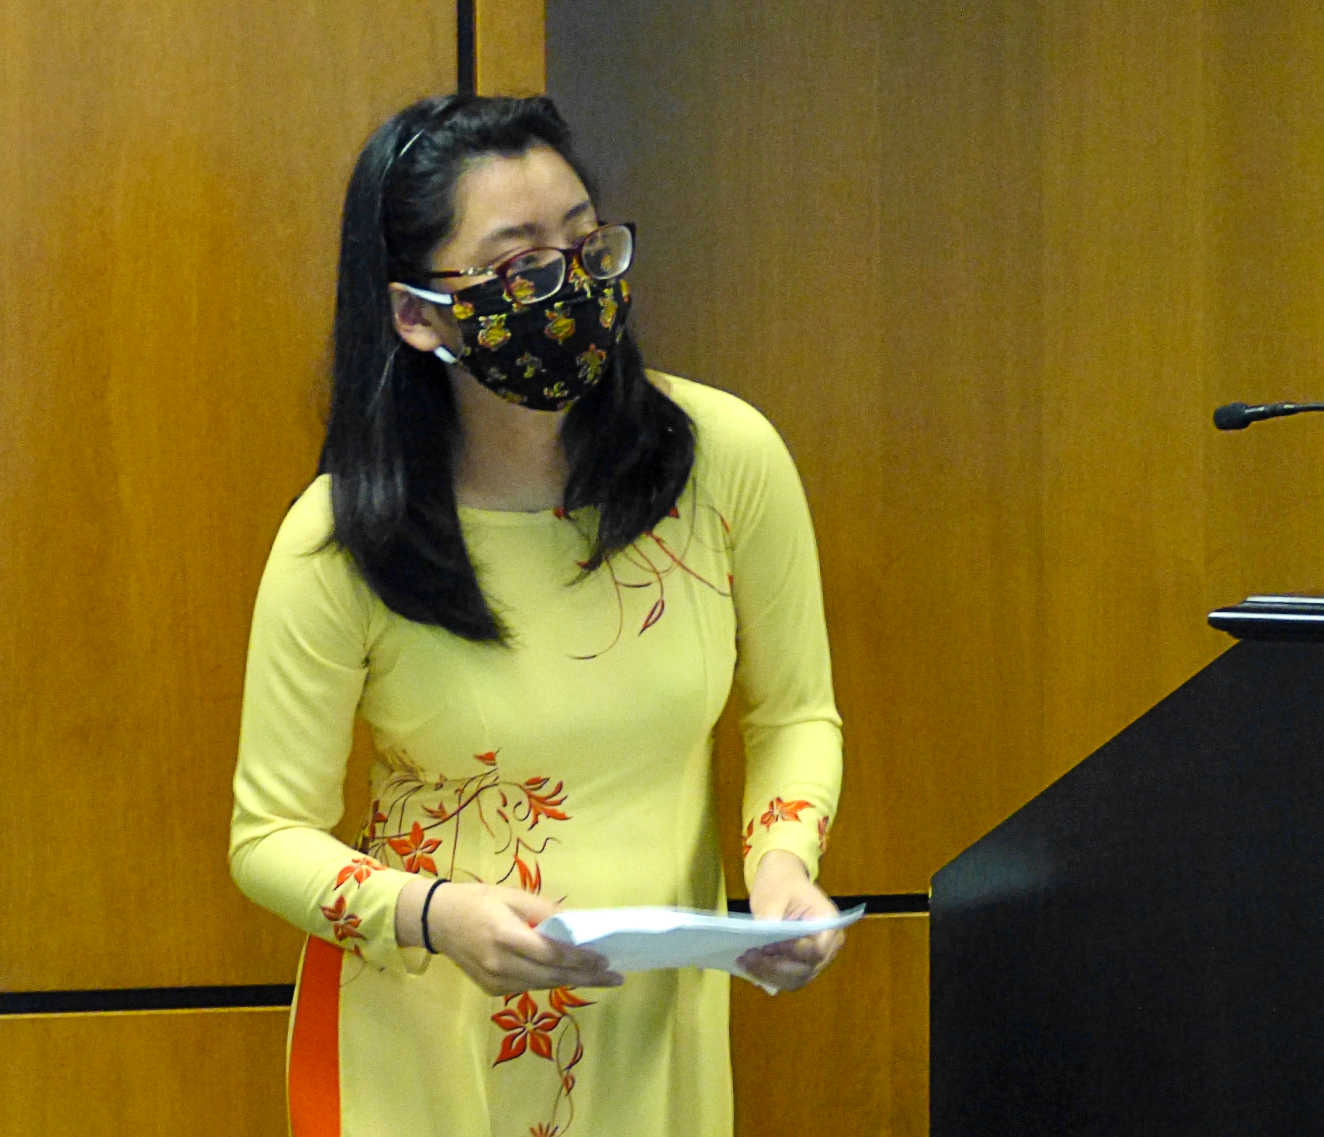 Julia Cao, community organizer, speaks about Asian-American Pacific Islander Heritage Month at the Lancaster County commissioners meeting on Wednesday, May 5, 2021. (Photo: Tim Stuhldreher)